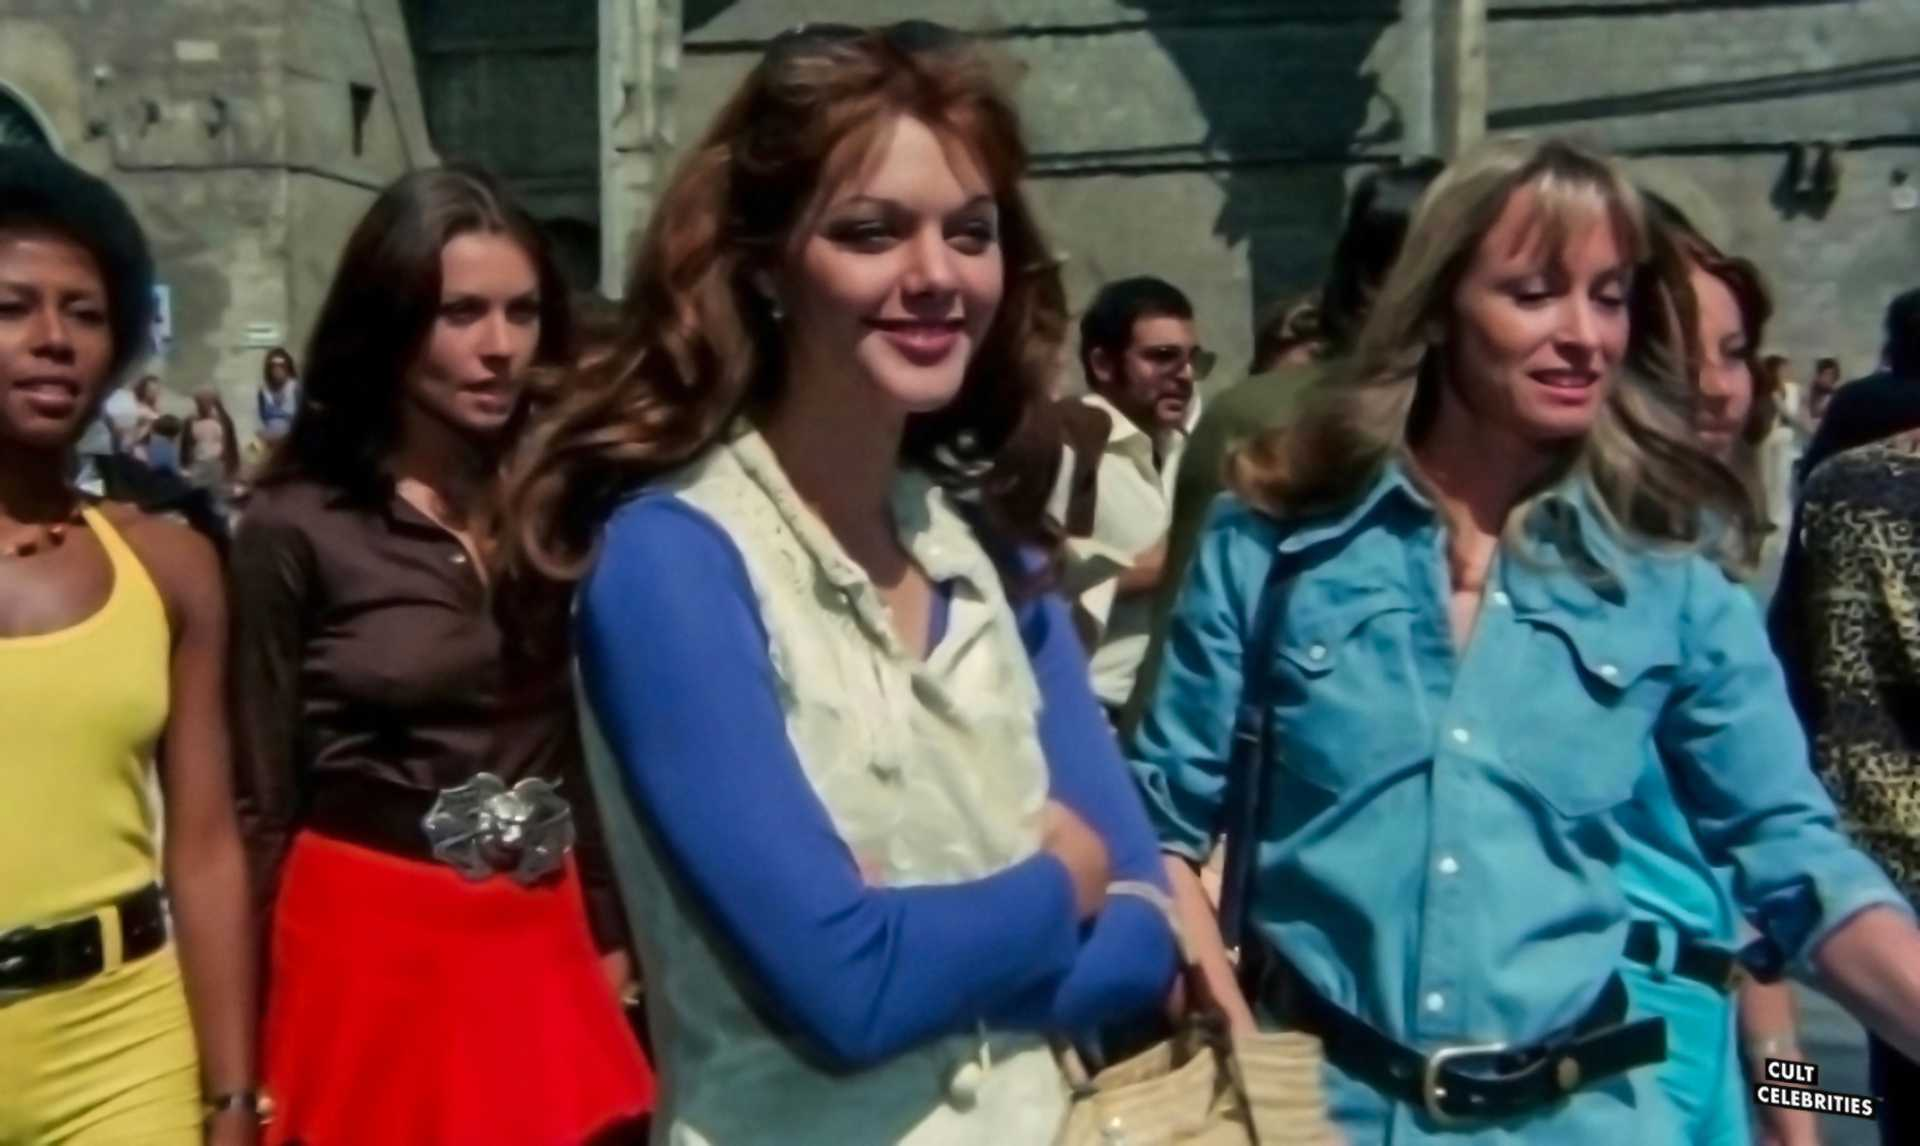 Angela Covello, Carla Brait, Suzy Kendall and Tina Aumont in Torso (1973)